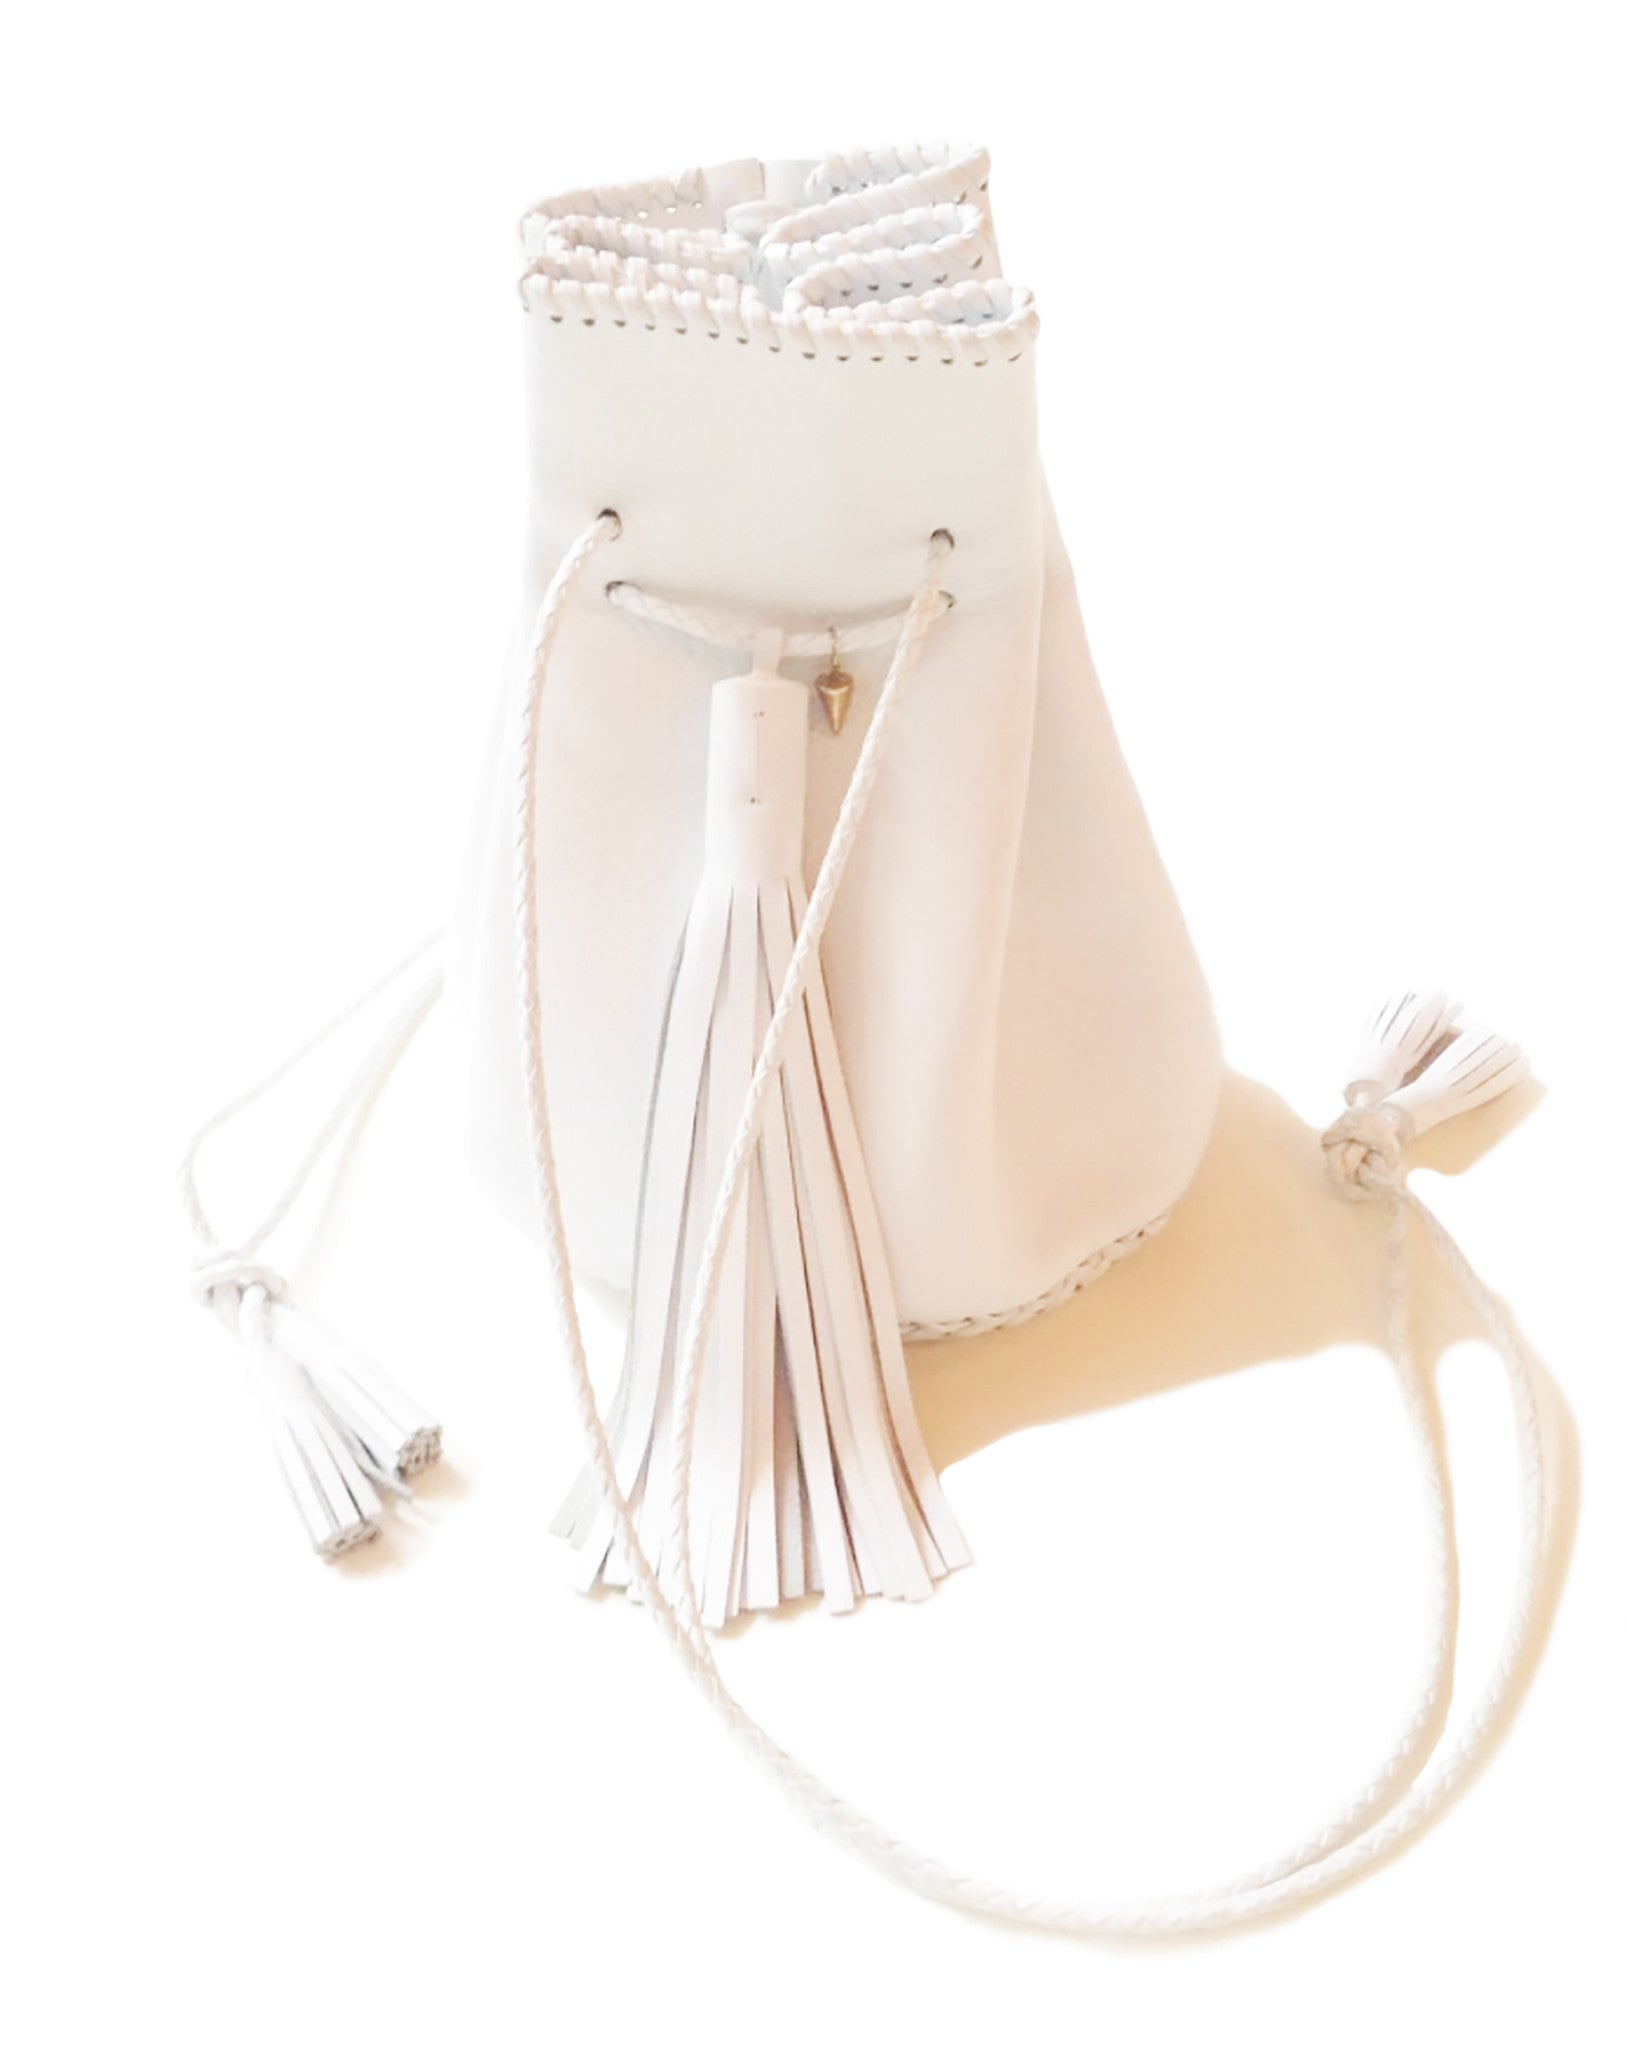 White Leather Whipstitch Bullet Bag Wendy Nichol Handmade in NYC Leather Bucket Handbag White